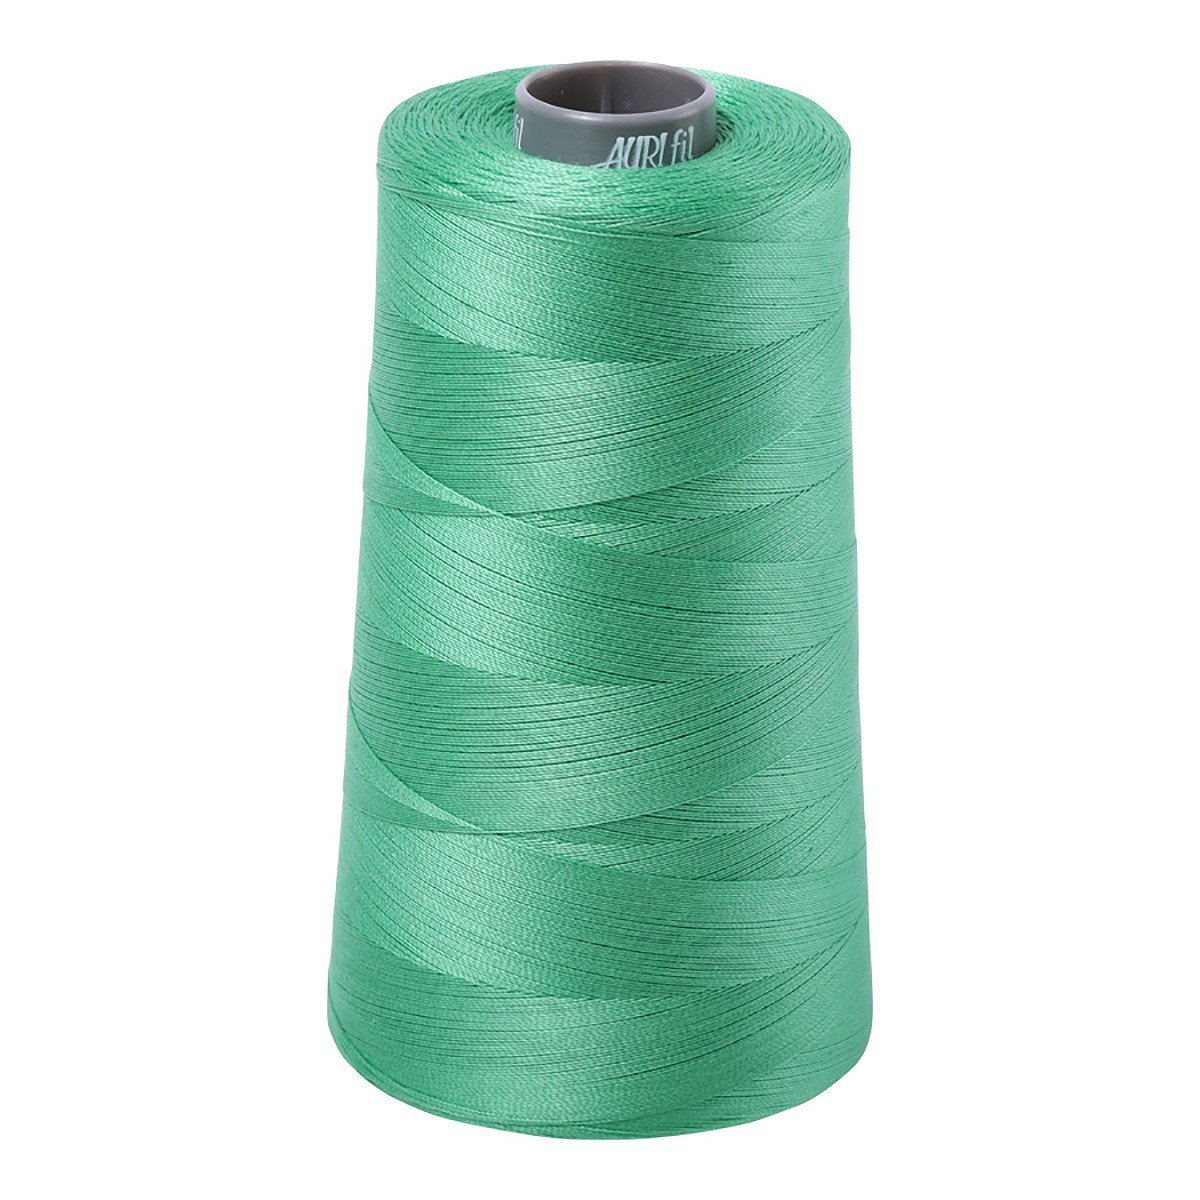 Mako (Cotton) Embroidery Thread 28wt 3609yds Light Emerald